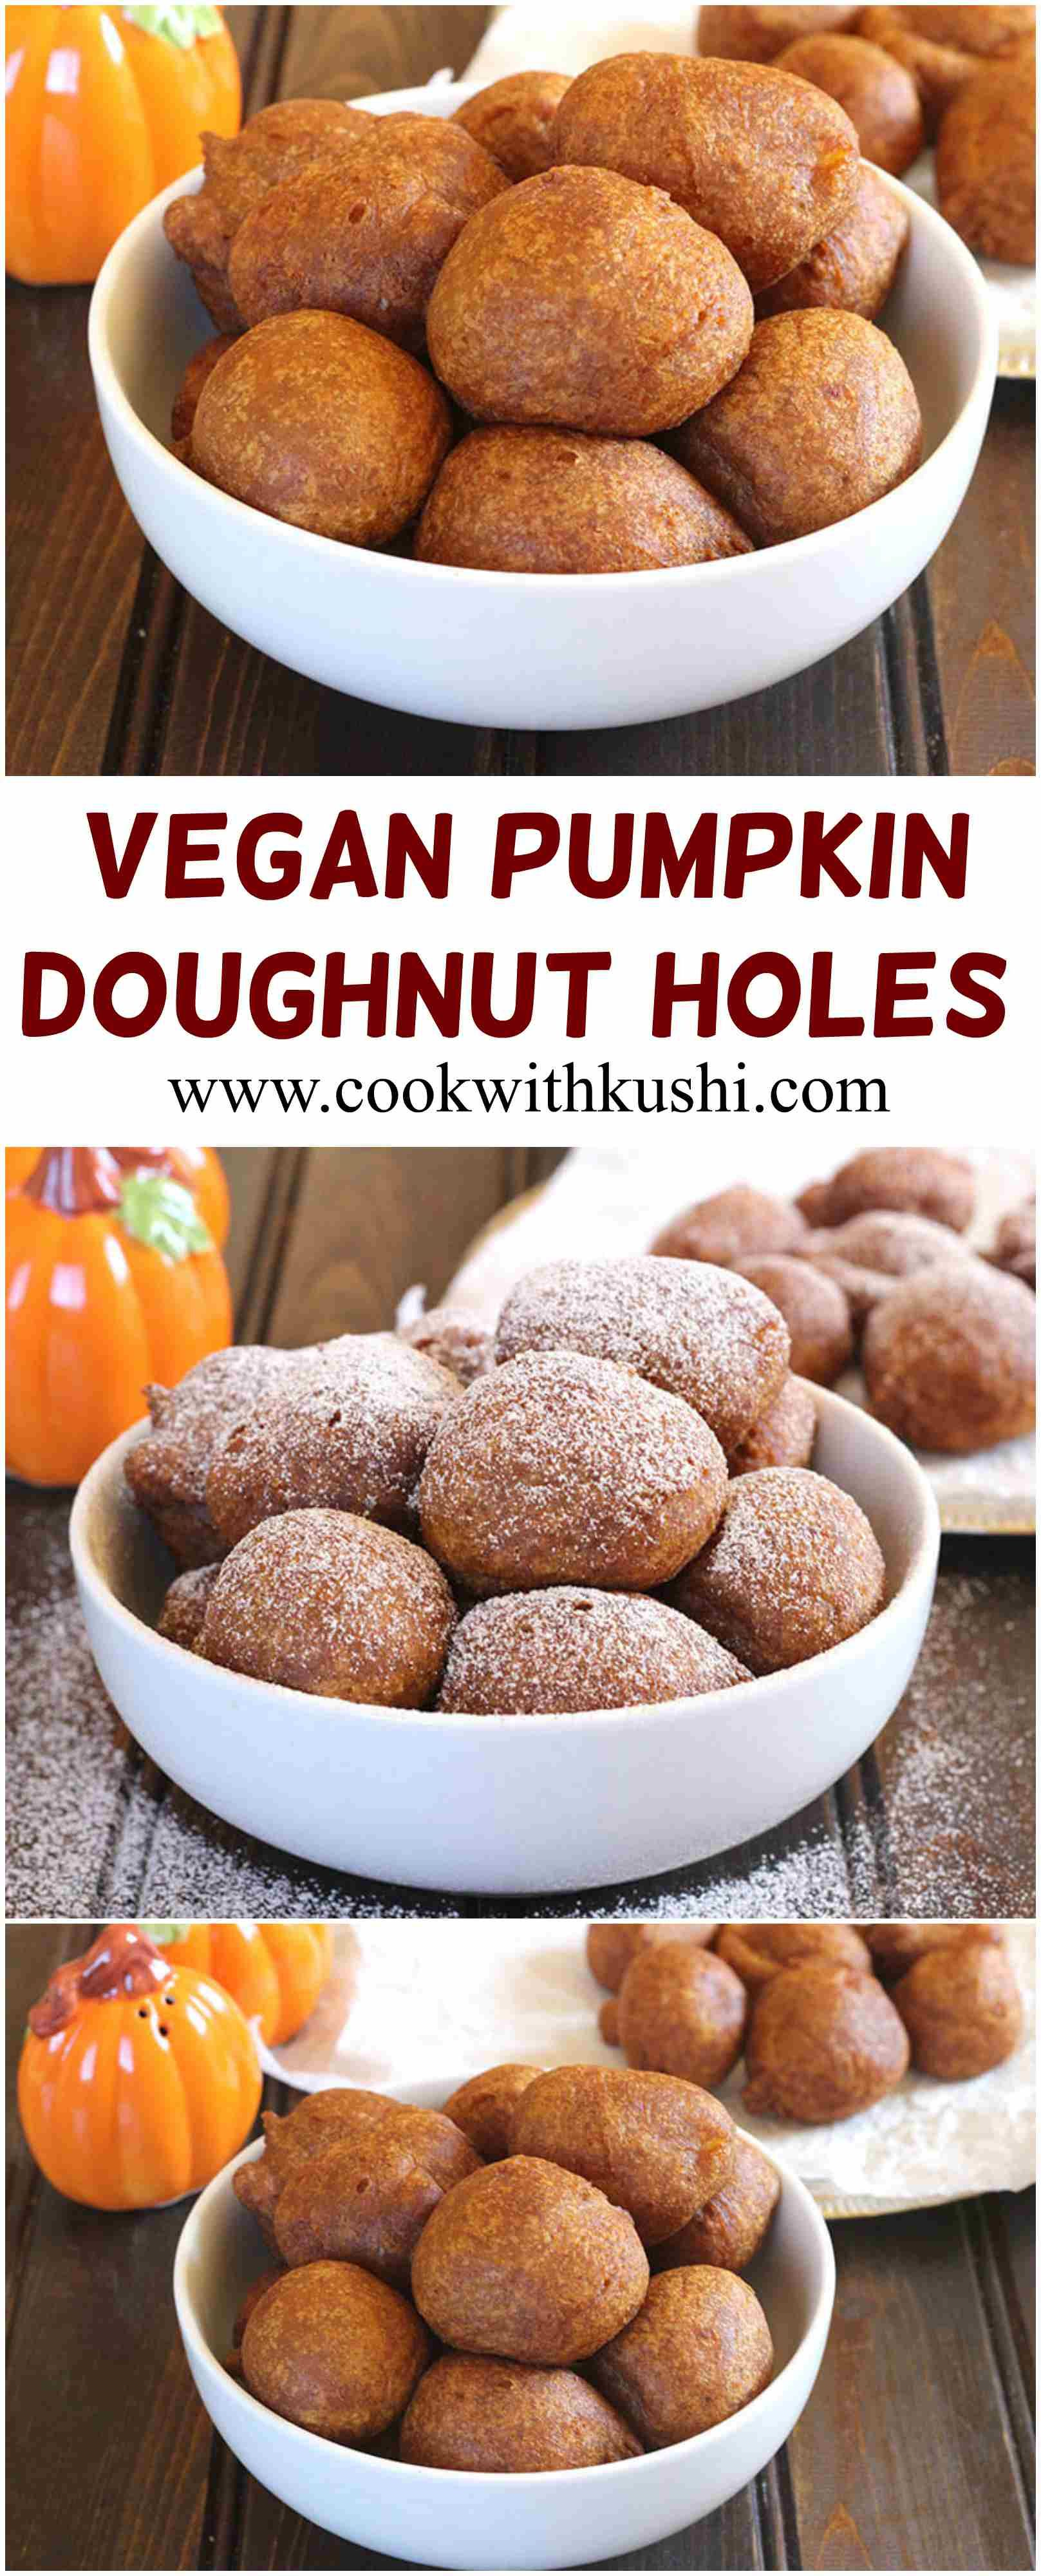 Vegan Pumpkin Doughnut Holes Vegan Recipes Vegan Pumpkin